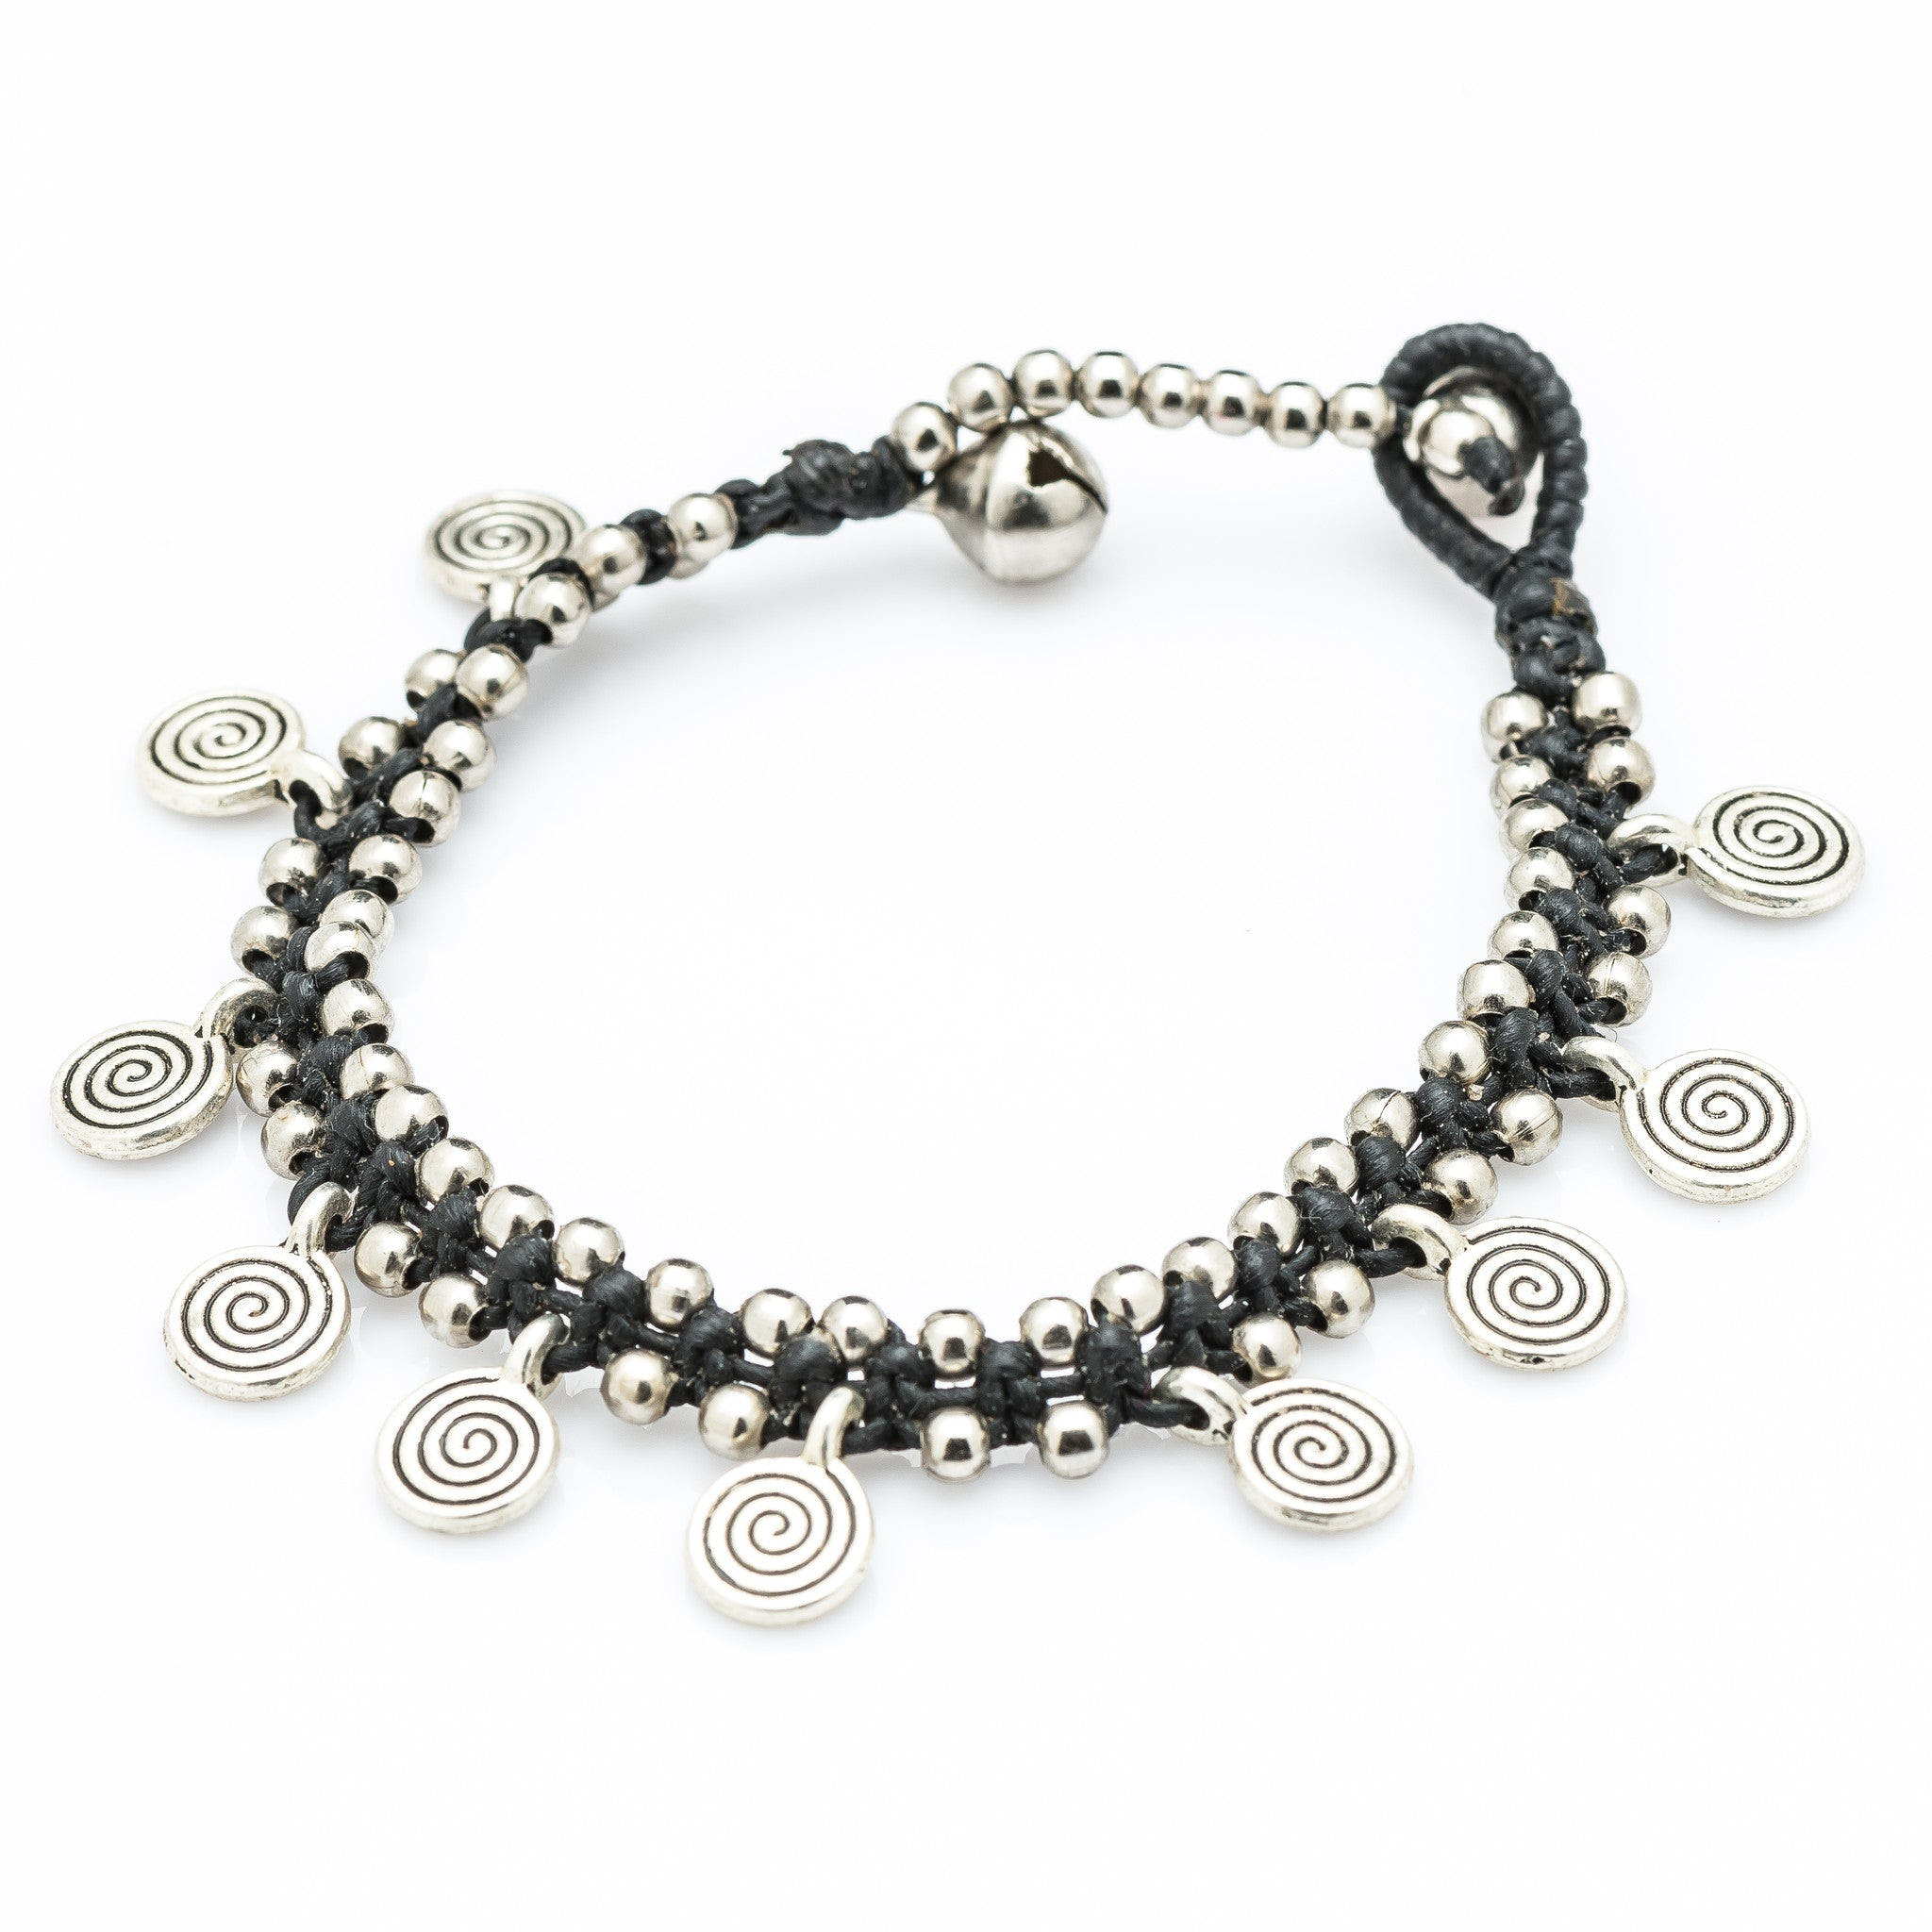 Hill Tribe Silver Bead And Large Swirl Charm Bracelets